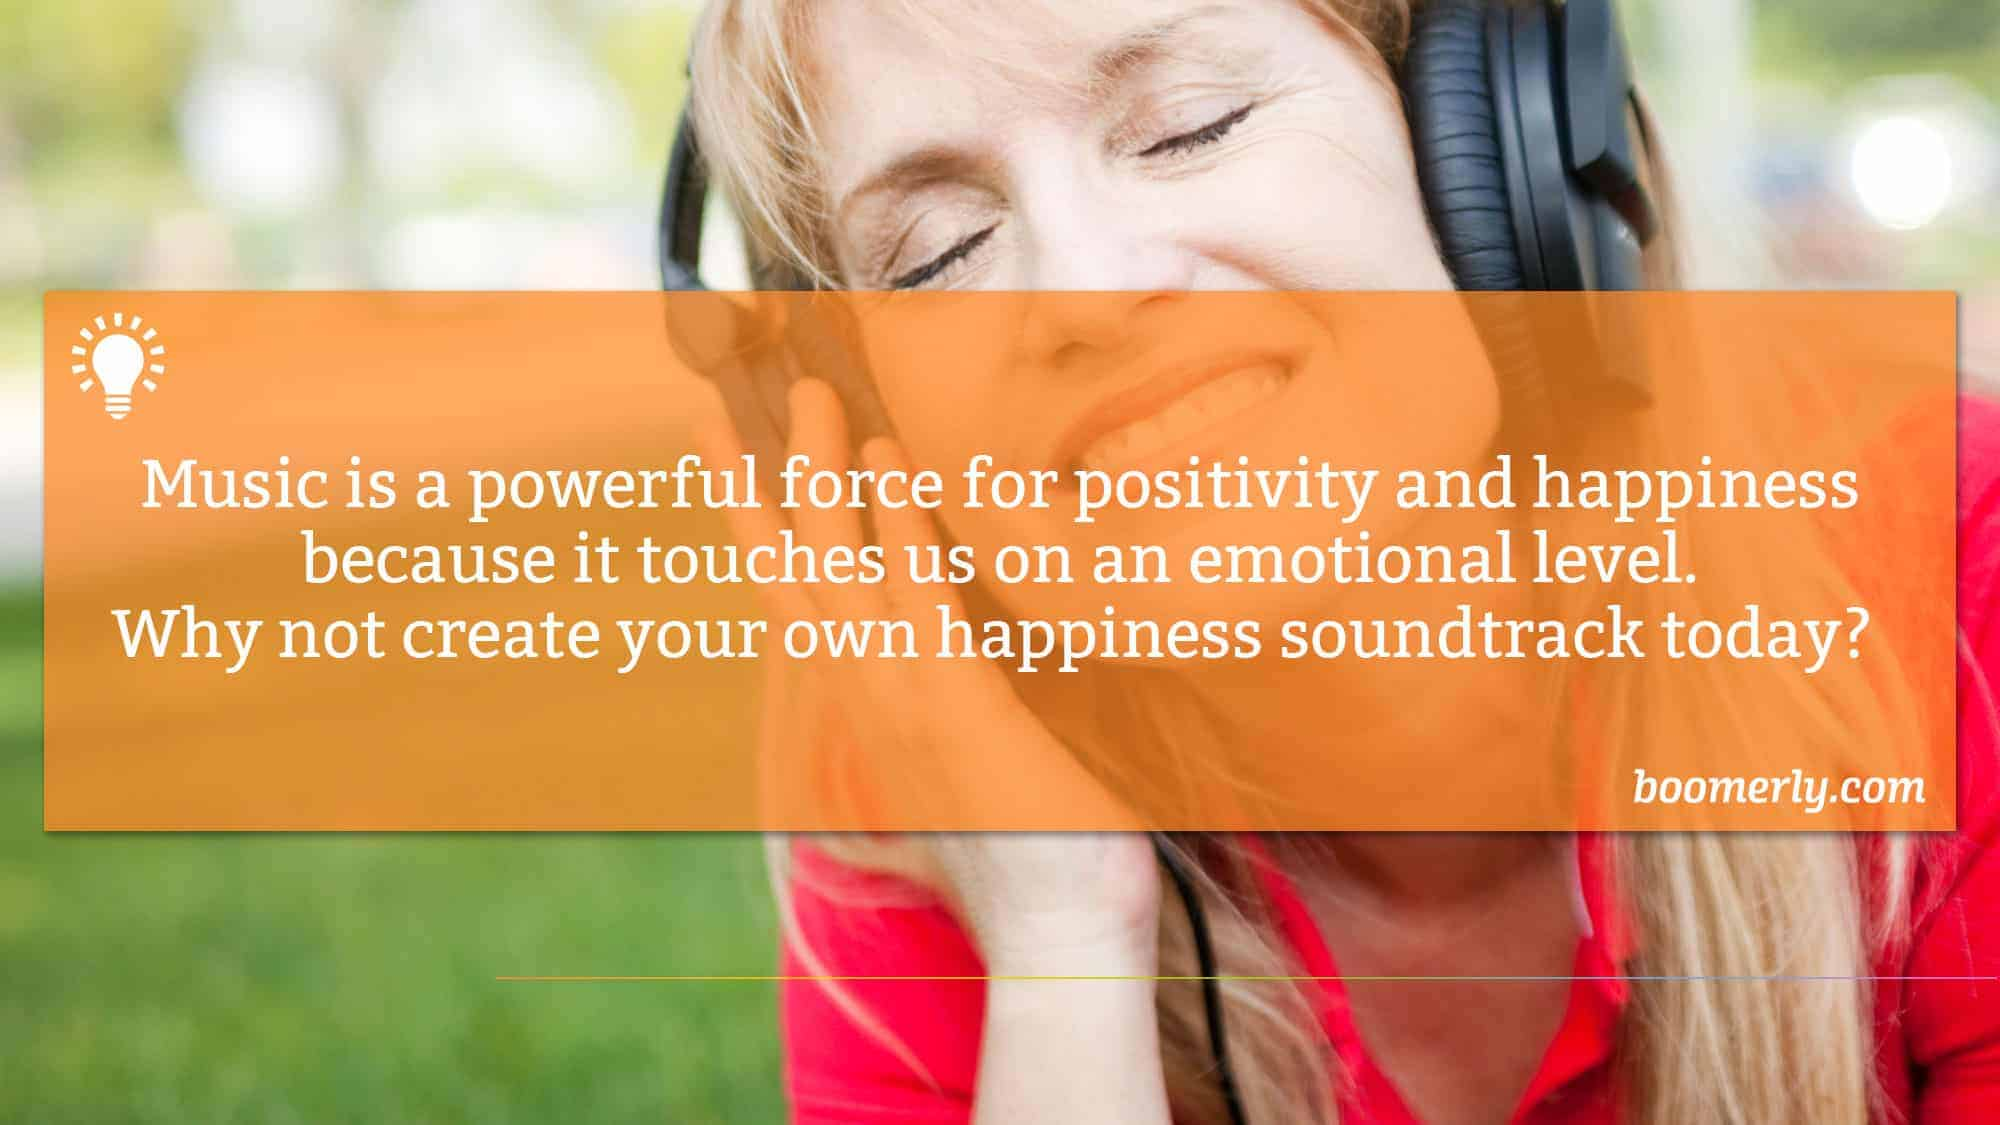 Happiness Soundtrack - Music is a powerful force for positivity and happiness because it touches us on an emotional level. Why not create your own happiness soundtrack today?